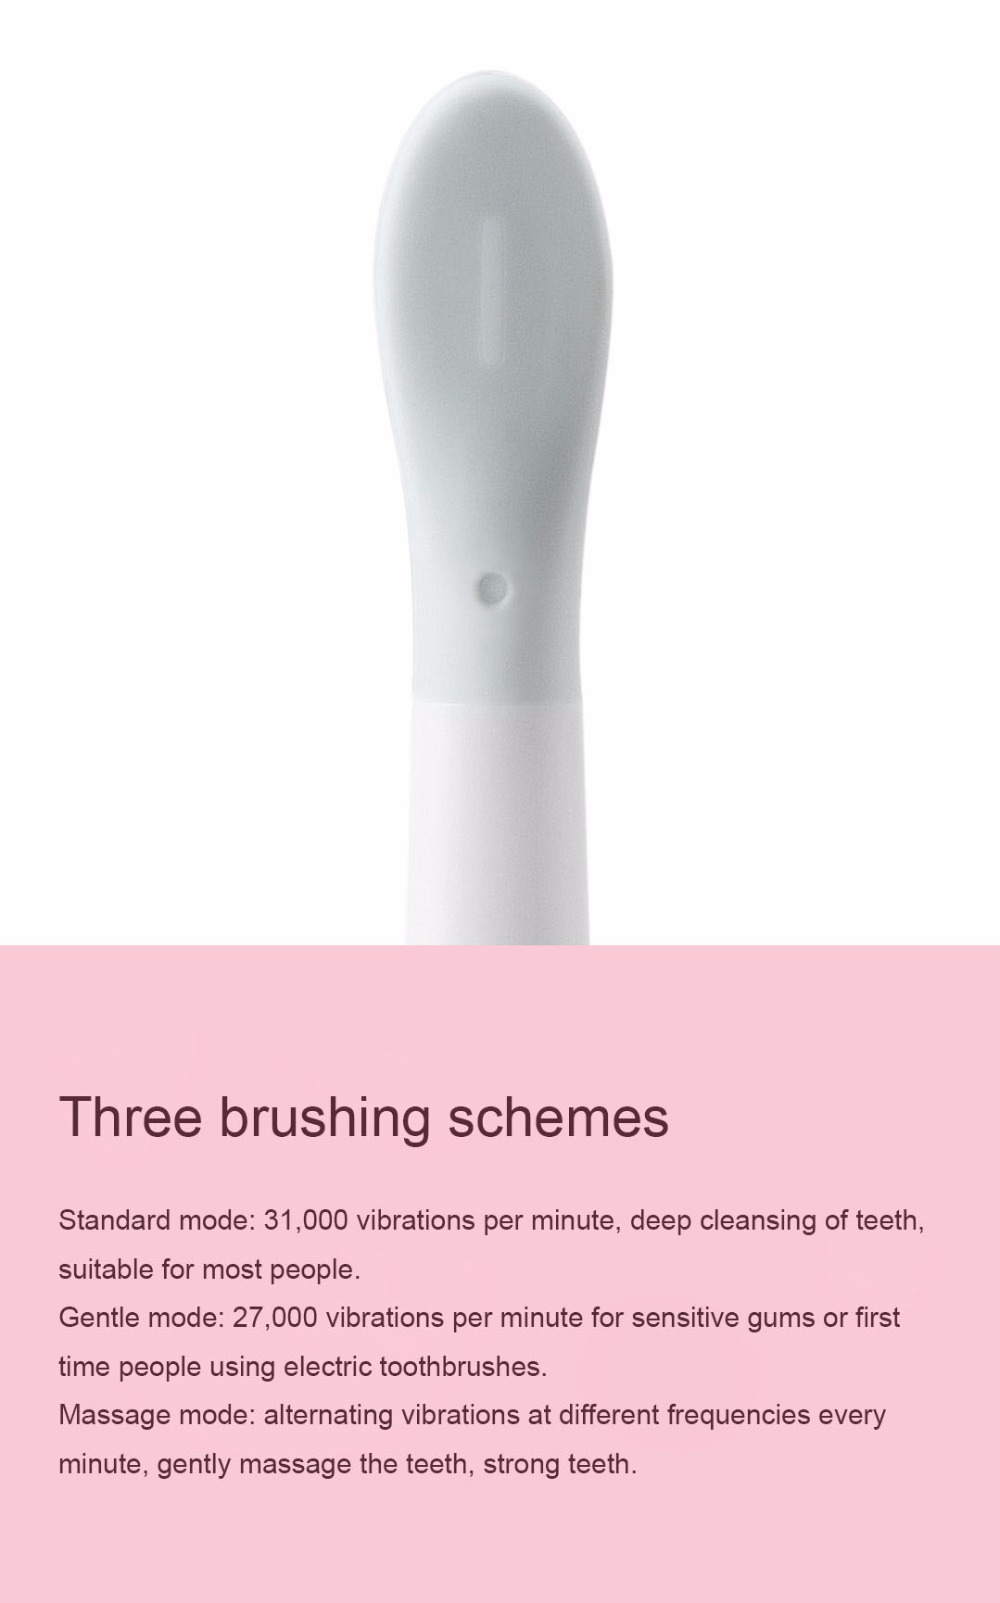 Xiaomi Mijia SO WHITE Sonic Electric Toothbrush Portable IPX7 Waterproof Deep Clean Inductive Rechargeable Wireless Tooth Brush (11)